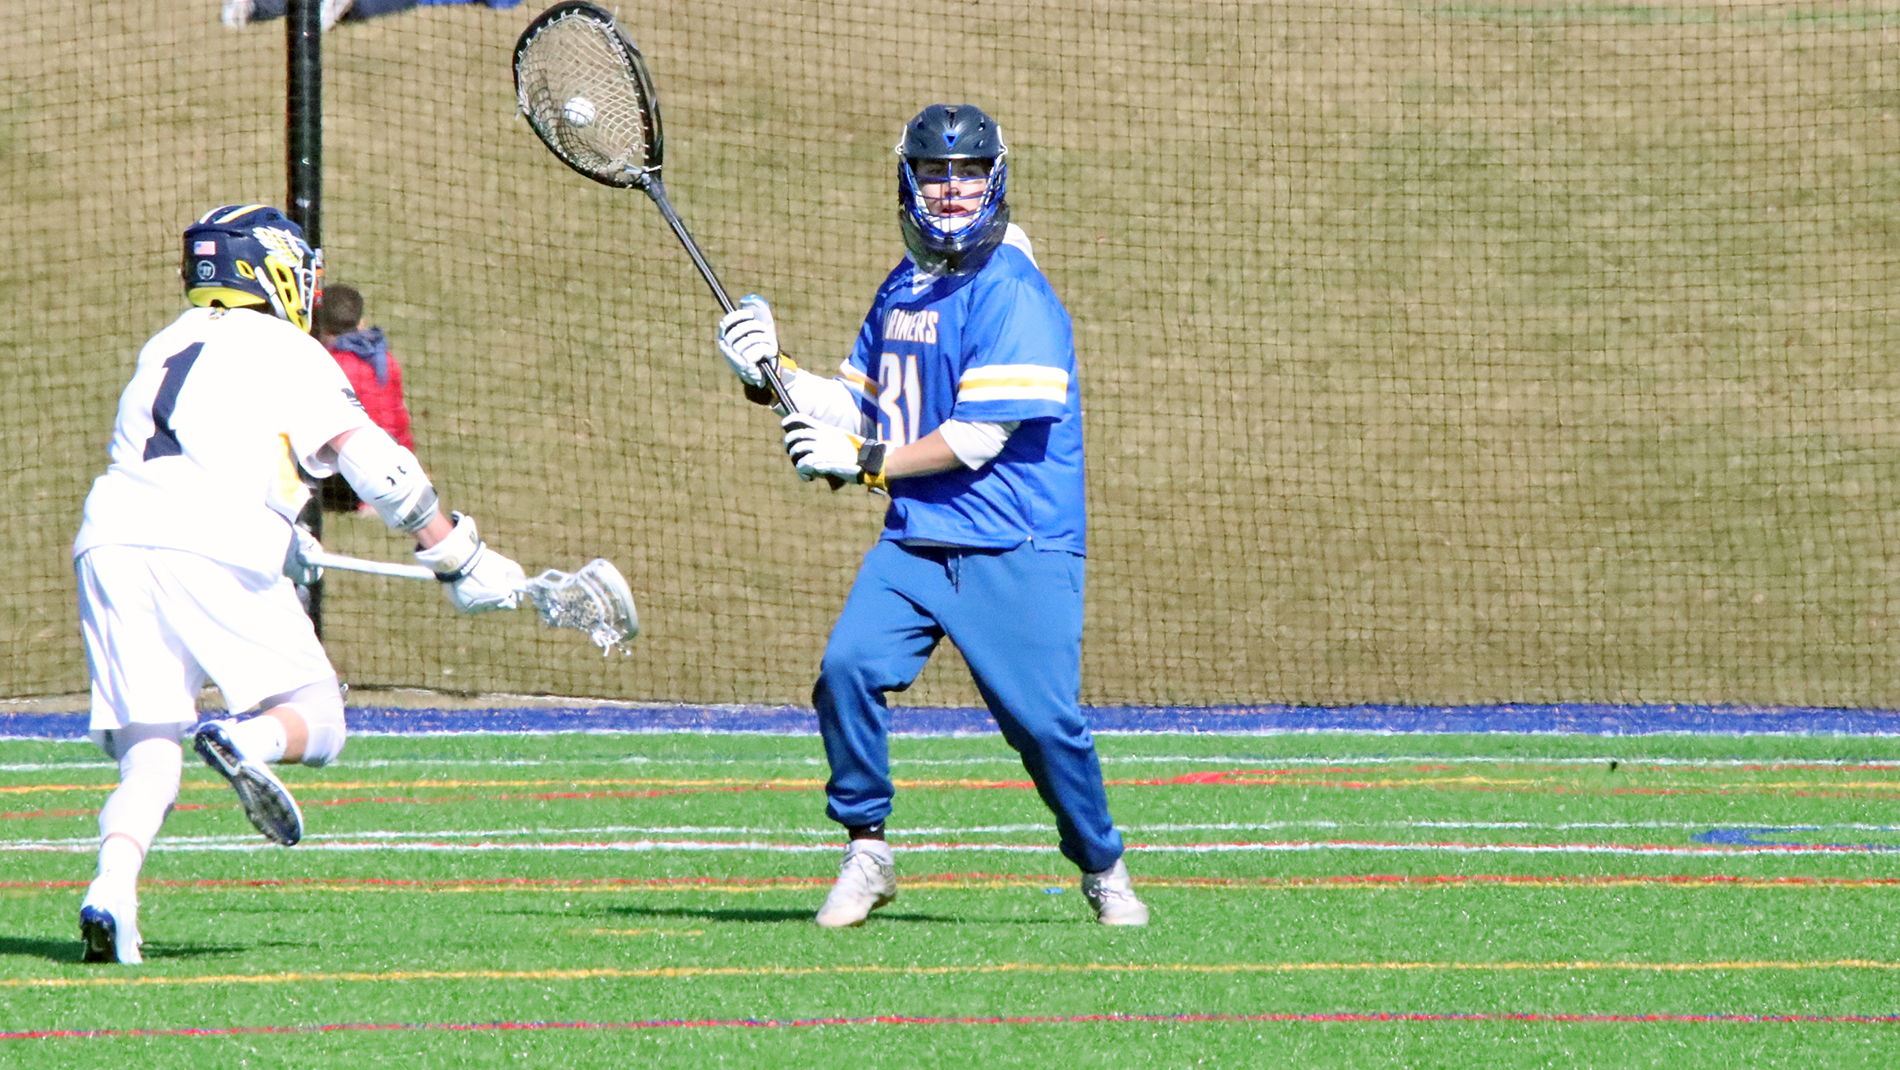 Men's Lacrosse Opens up 2020 Season with Win